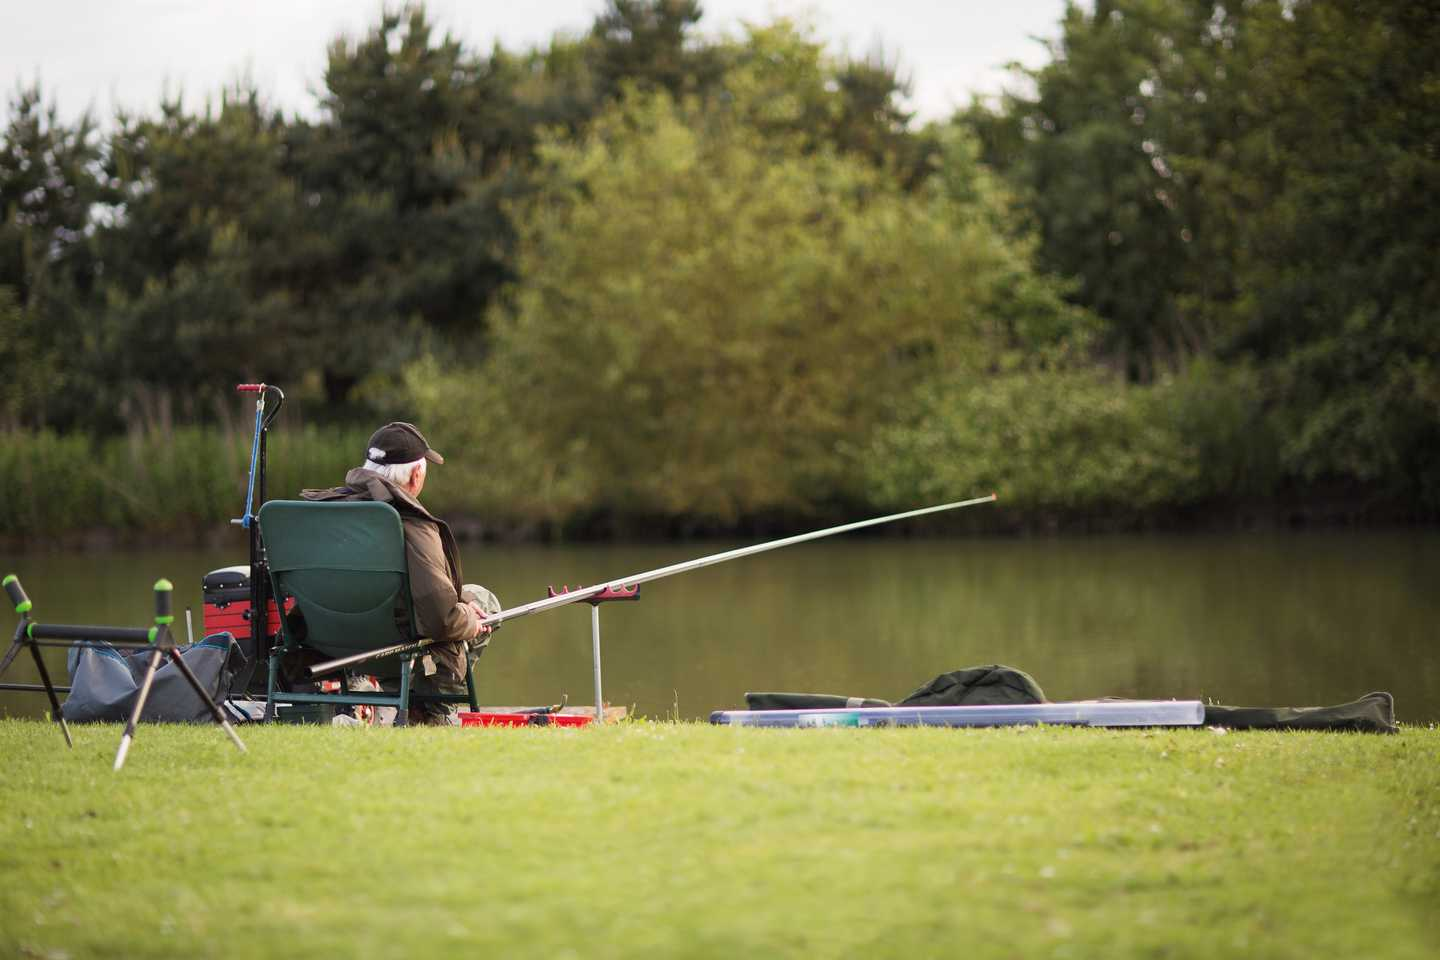 A man reclining in his chair as he waits for a fish to bite